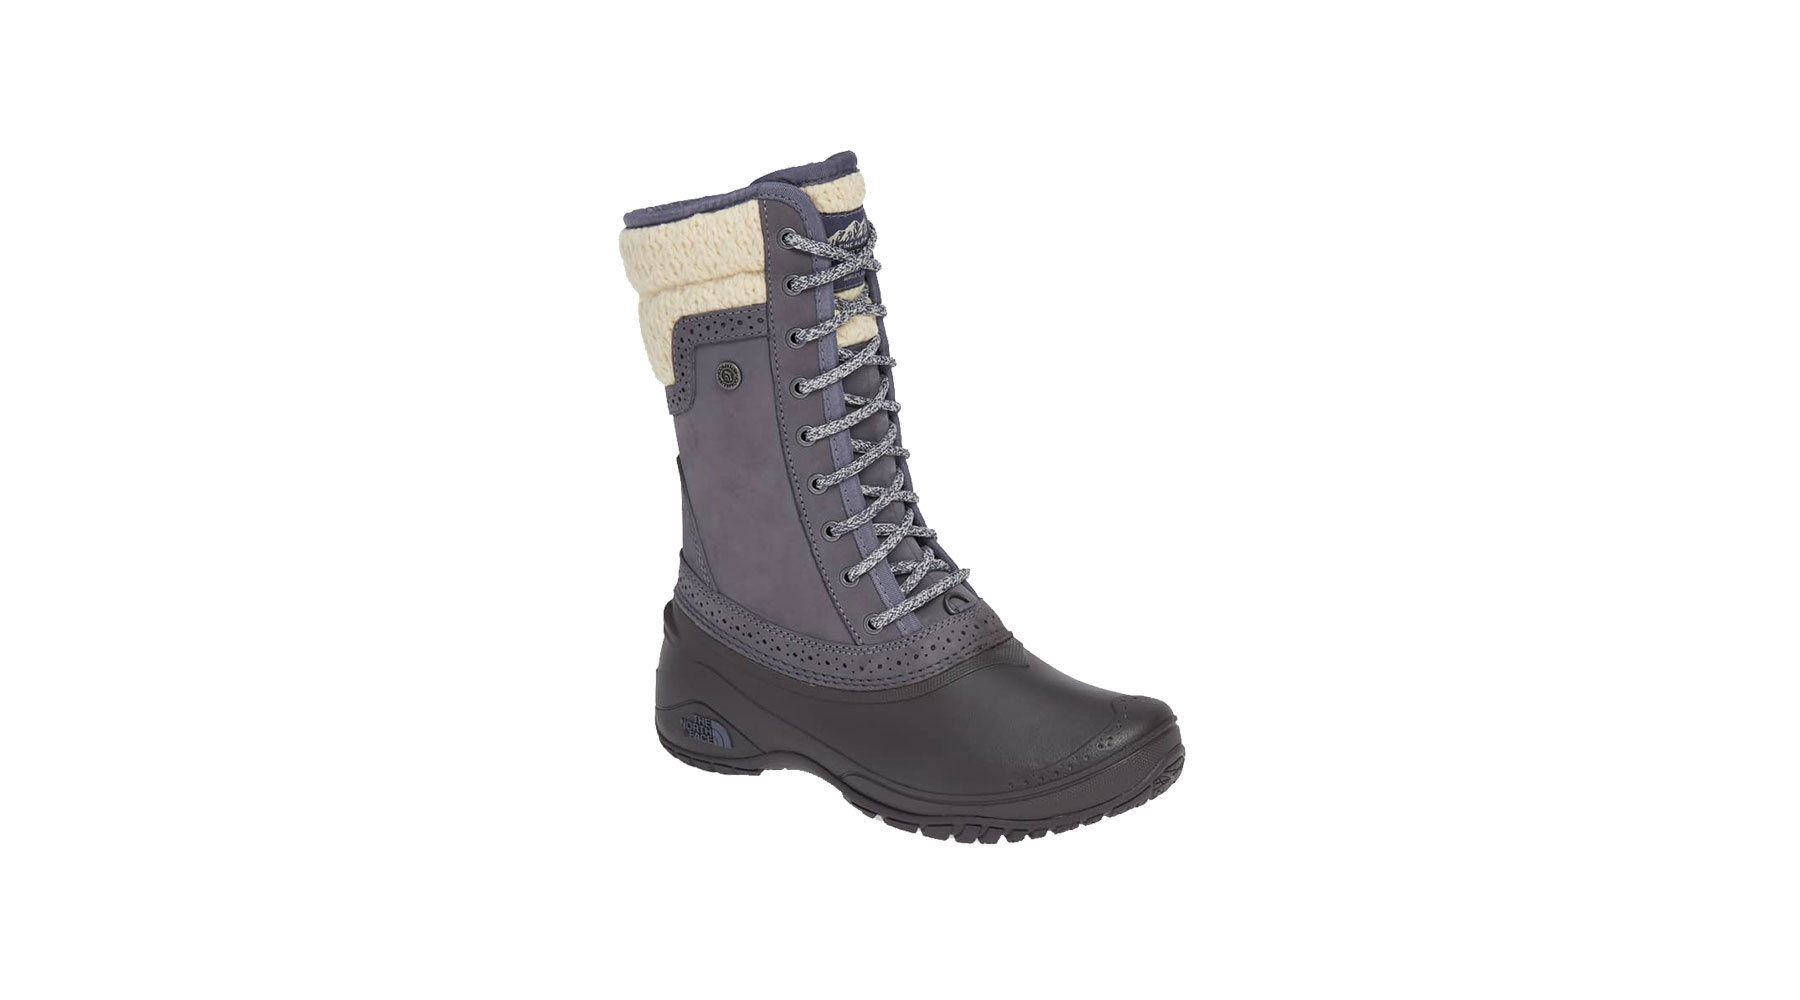 North Face Shellista Waterproof Insulated Snow Boot